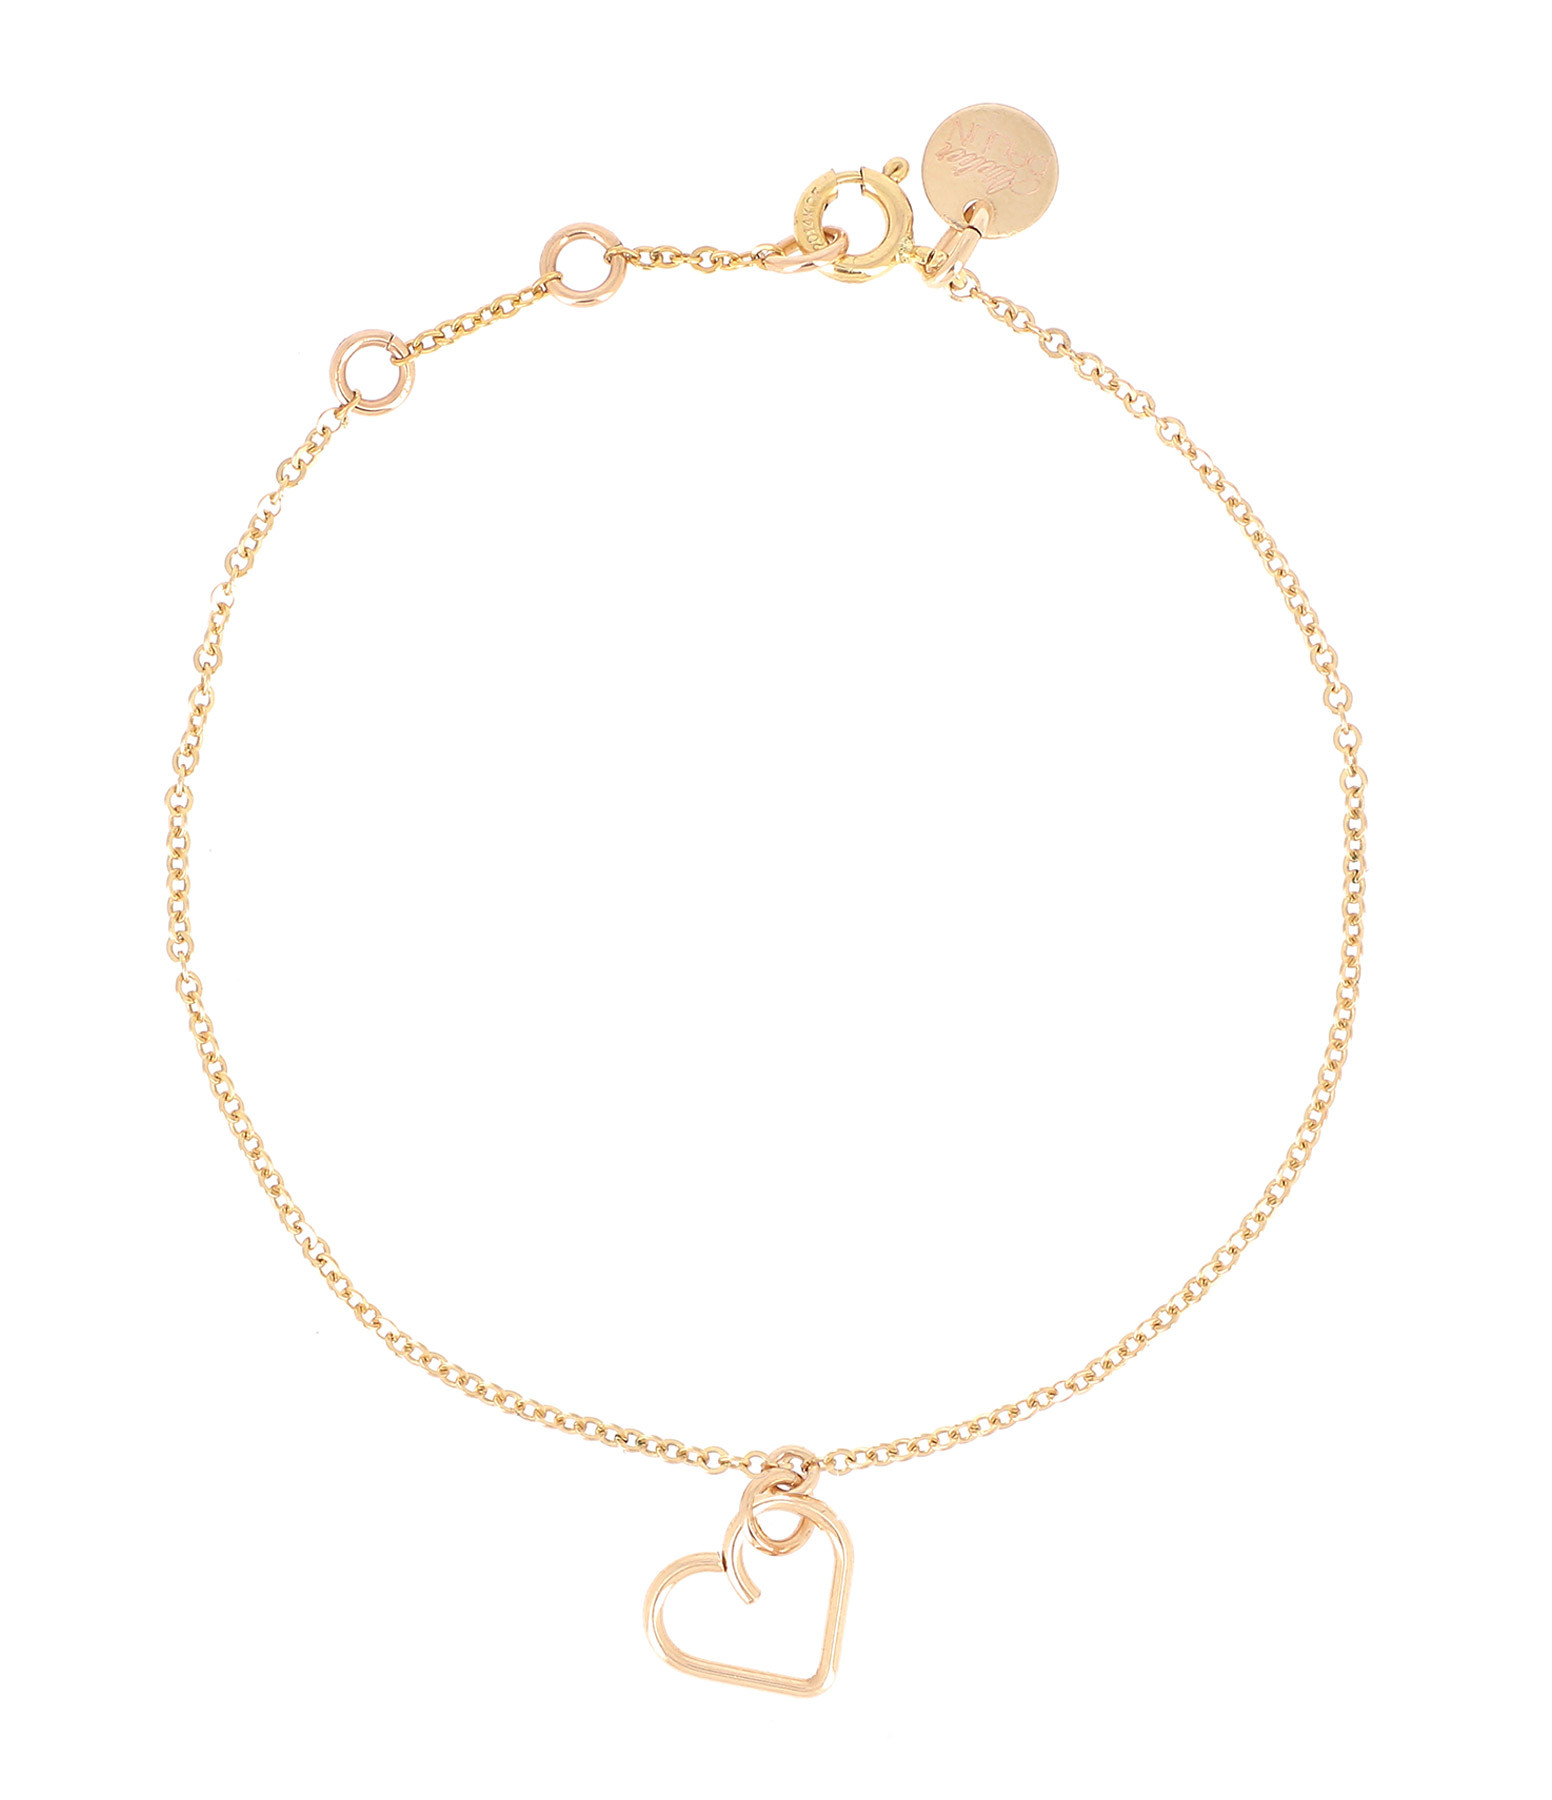 ATELIER PAULIN - Bracelet Lucky One Coeur Gold Filled 14K, Collection Charms